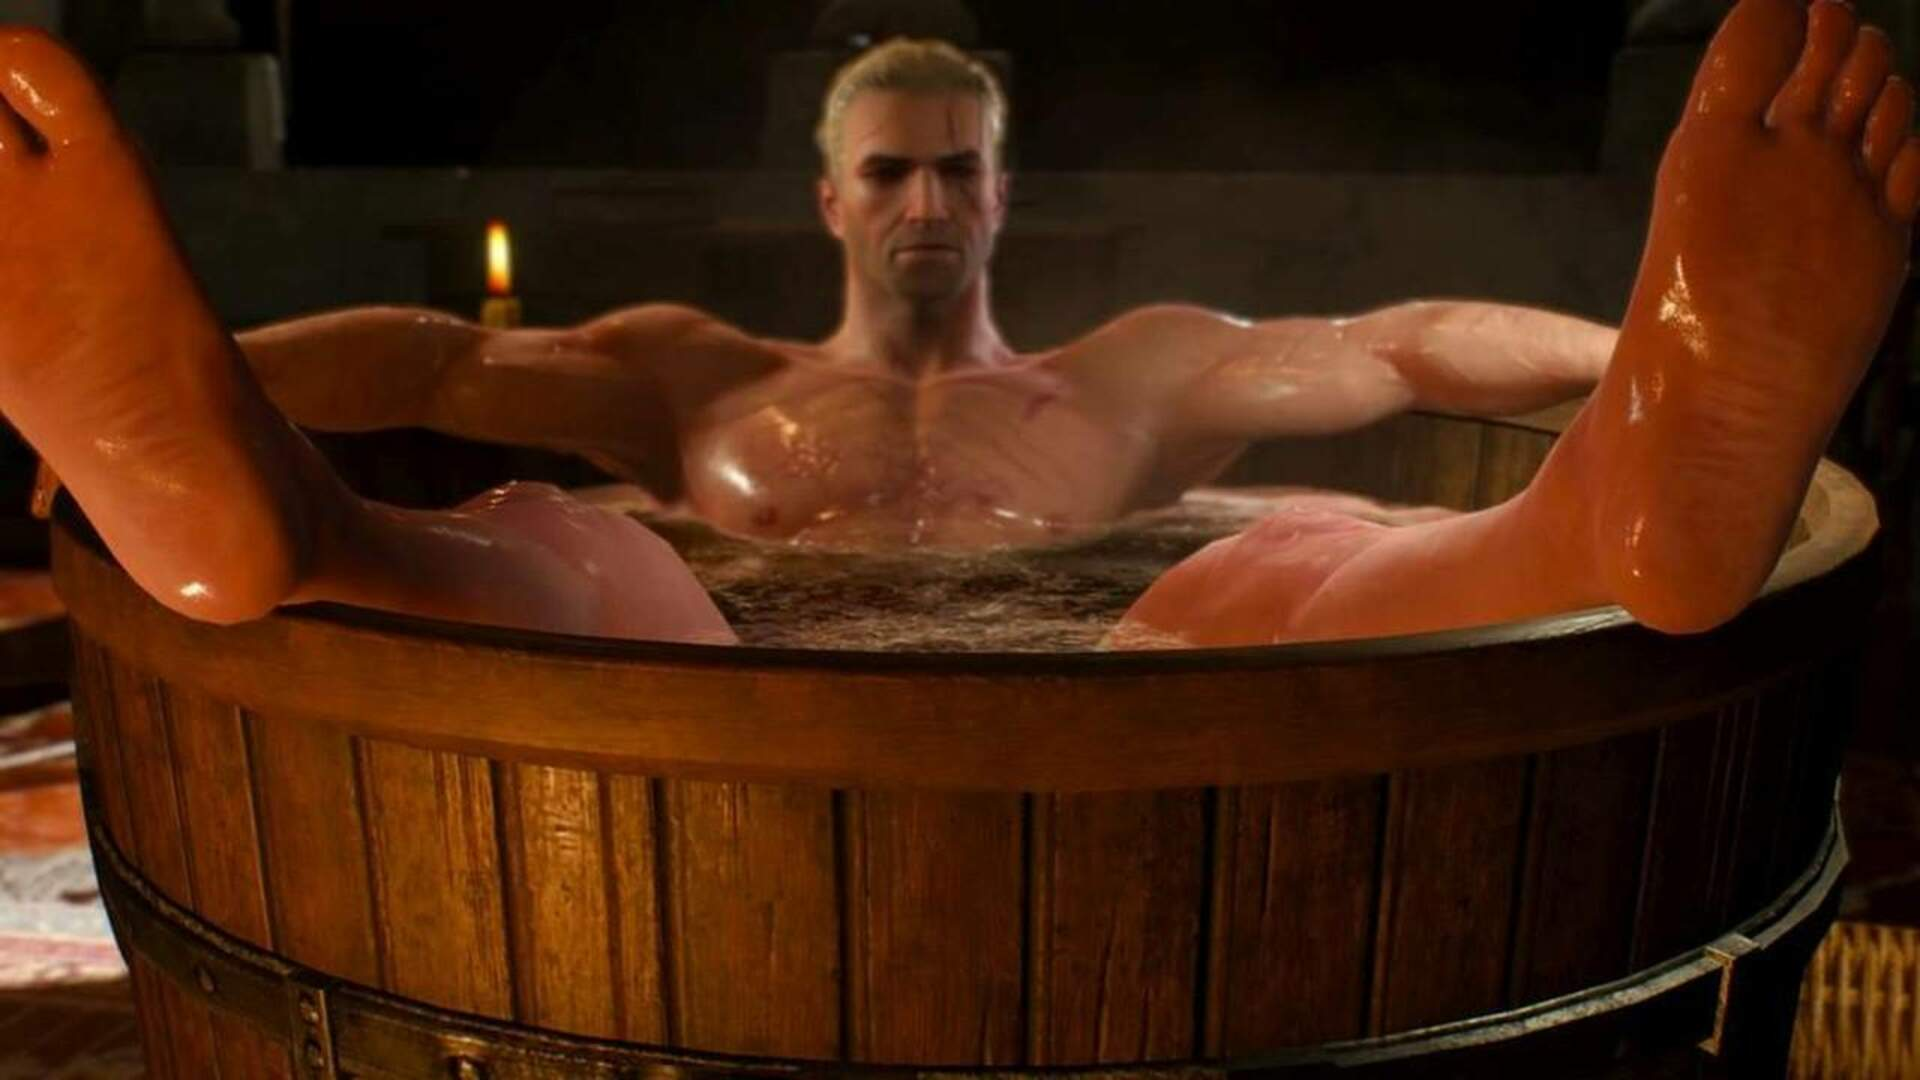 Netflix's The Witcher Will Have a Bathtub, But They Won't Say Who's In It